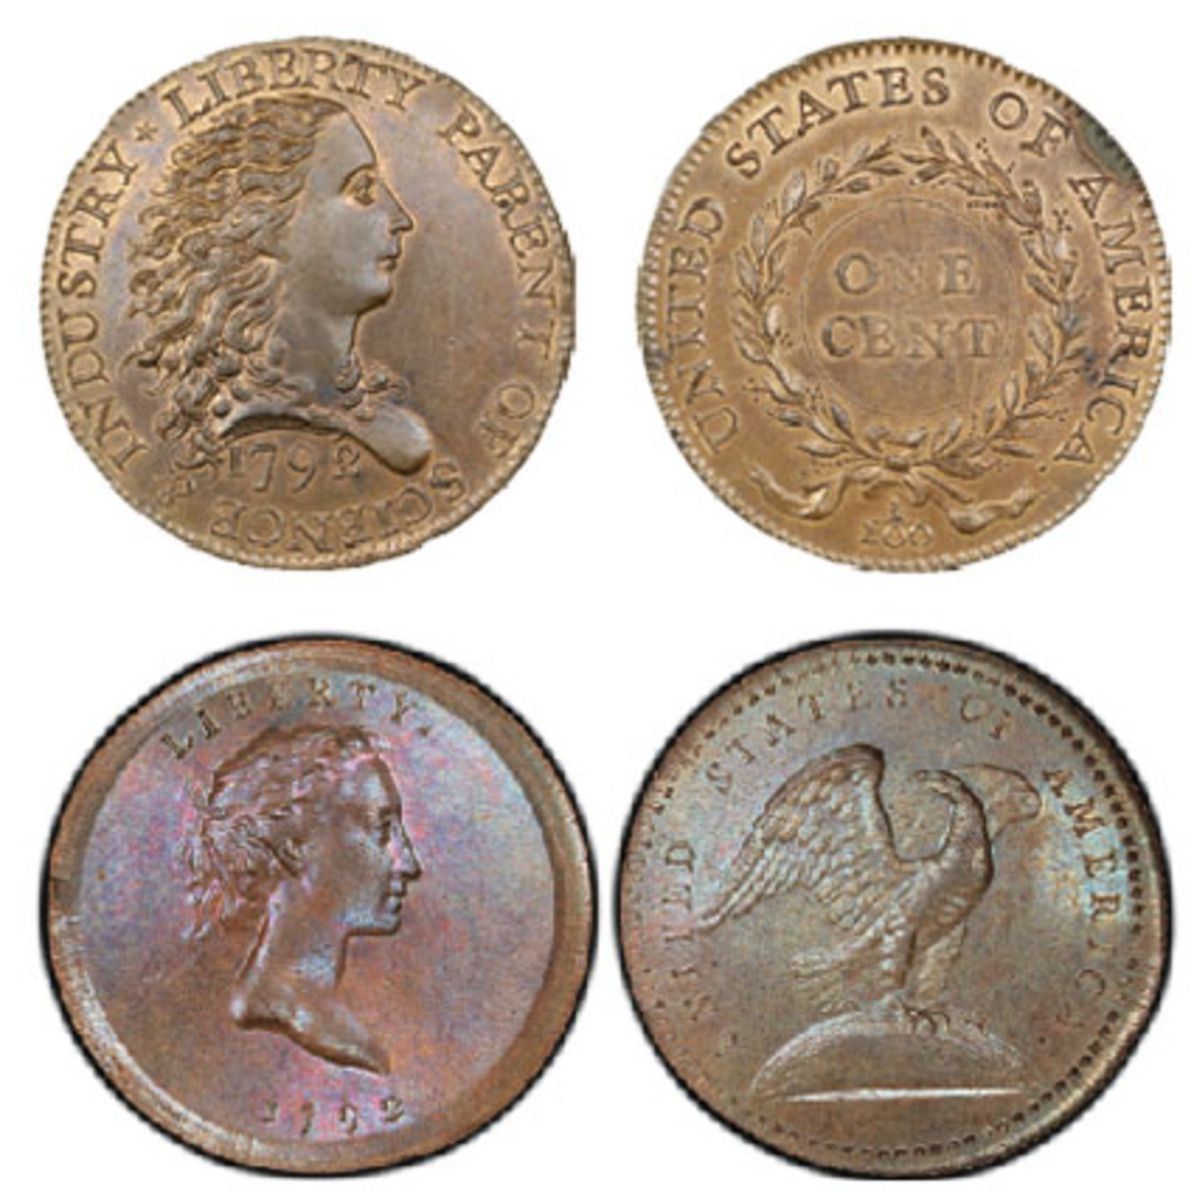 The Birch cent, top, and Eagle-on-Globe pattern copper quarter will be displayed at the ANA convention. (Photos courtesy Professional Coin Grading Service www.PCGS.com)